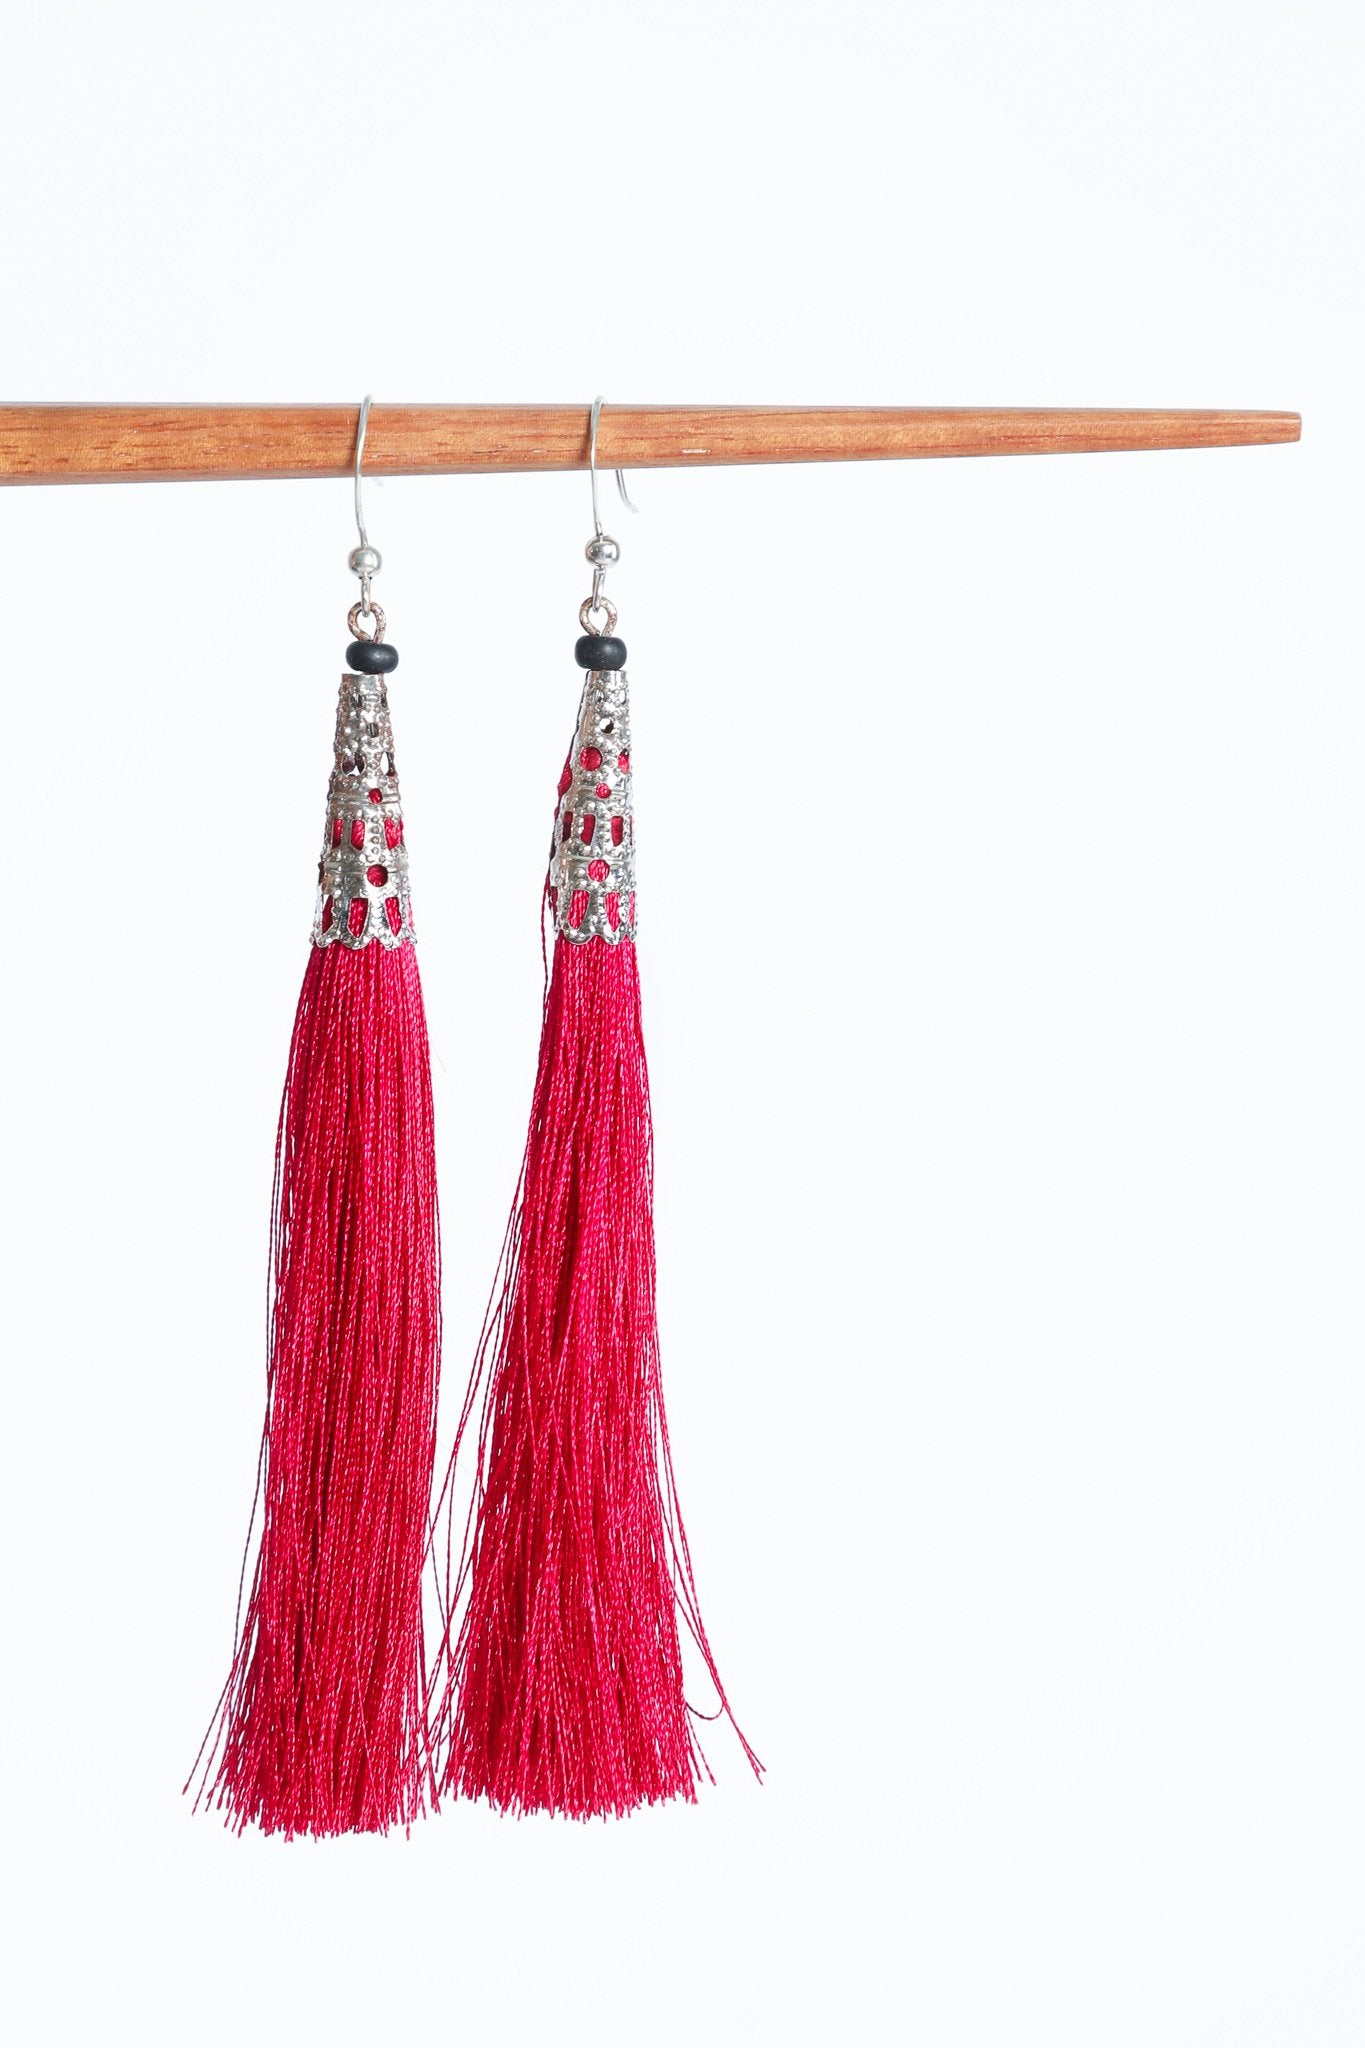 Yadana Arrow Tassel Earrings - Magenta Pink - Our Barehands